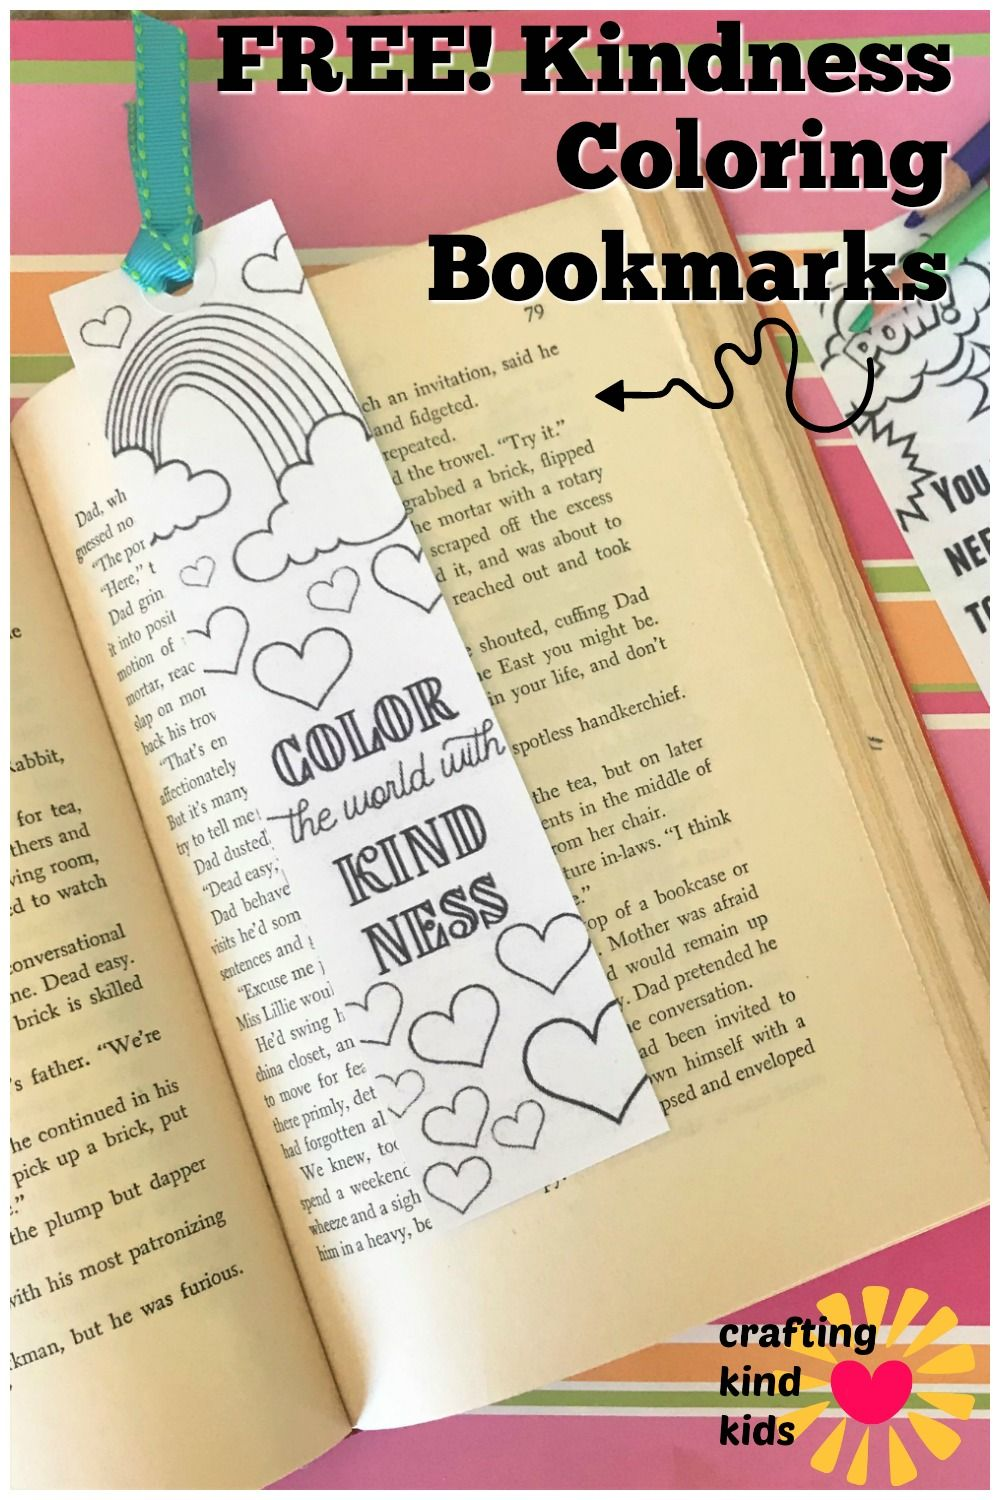 Kindness Coloring Bookmarks Kids Adults Coloring Bookmarks Bookmarks Kids Coloring Pages For Kids